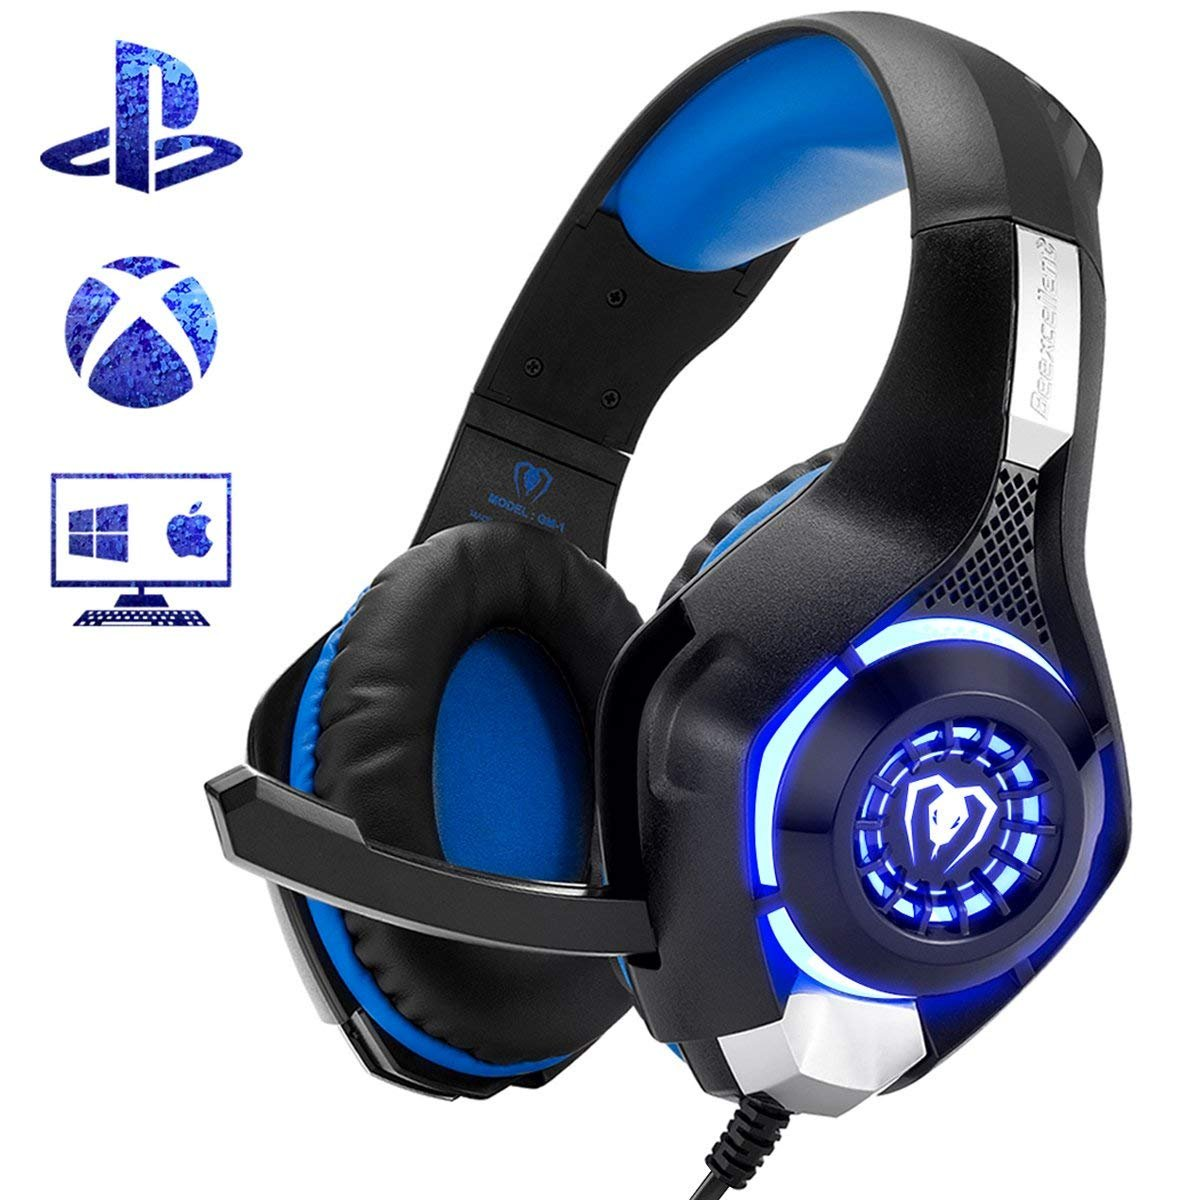 Comfort Noise Reduction Crystal Clarity 3.5mm LED Professional Headphone with Mic for Xbox One PC Laptop Tablet Mac Smart Phone GRECEDAY Gaming Headset for PS4